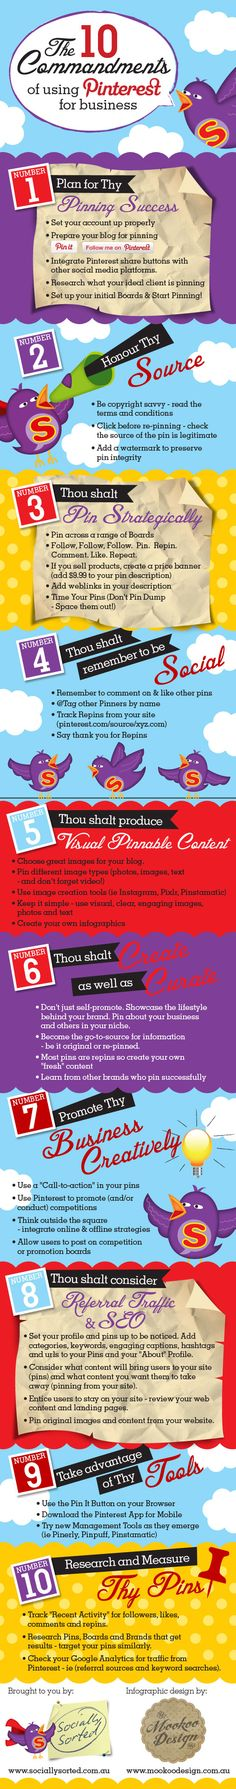 The 10 Commandments of #Pinterest - #Infographic www.dimhouston.com #socialmedia